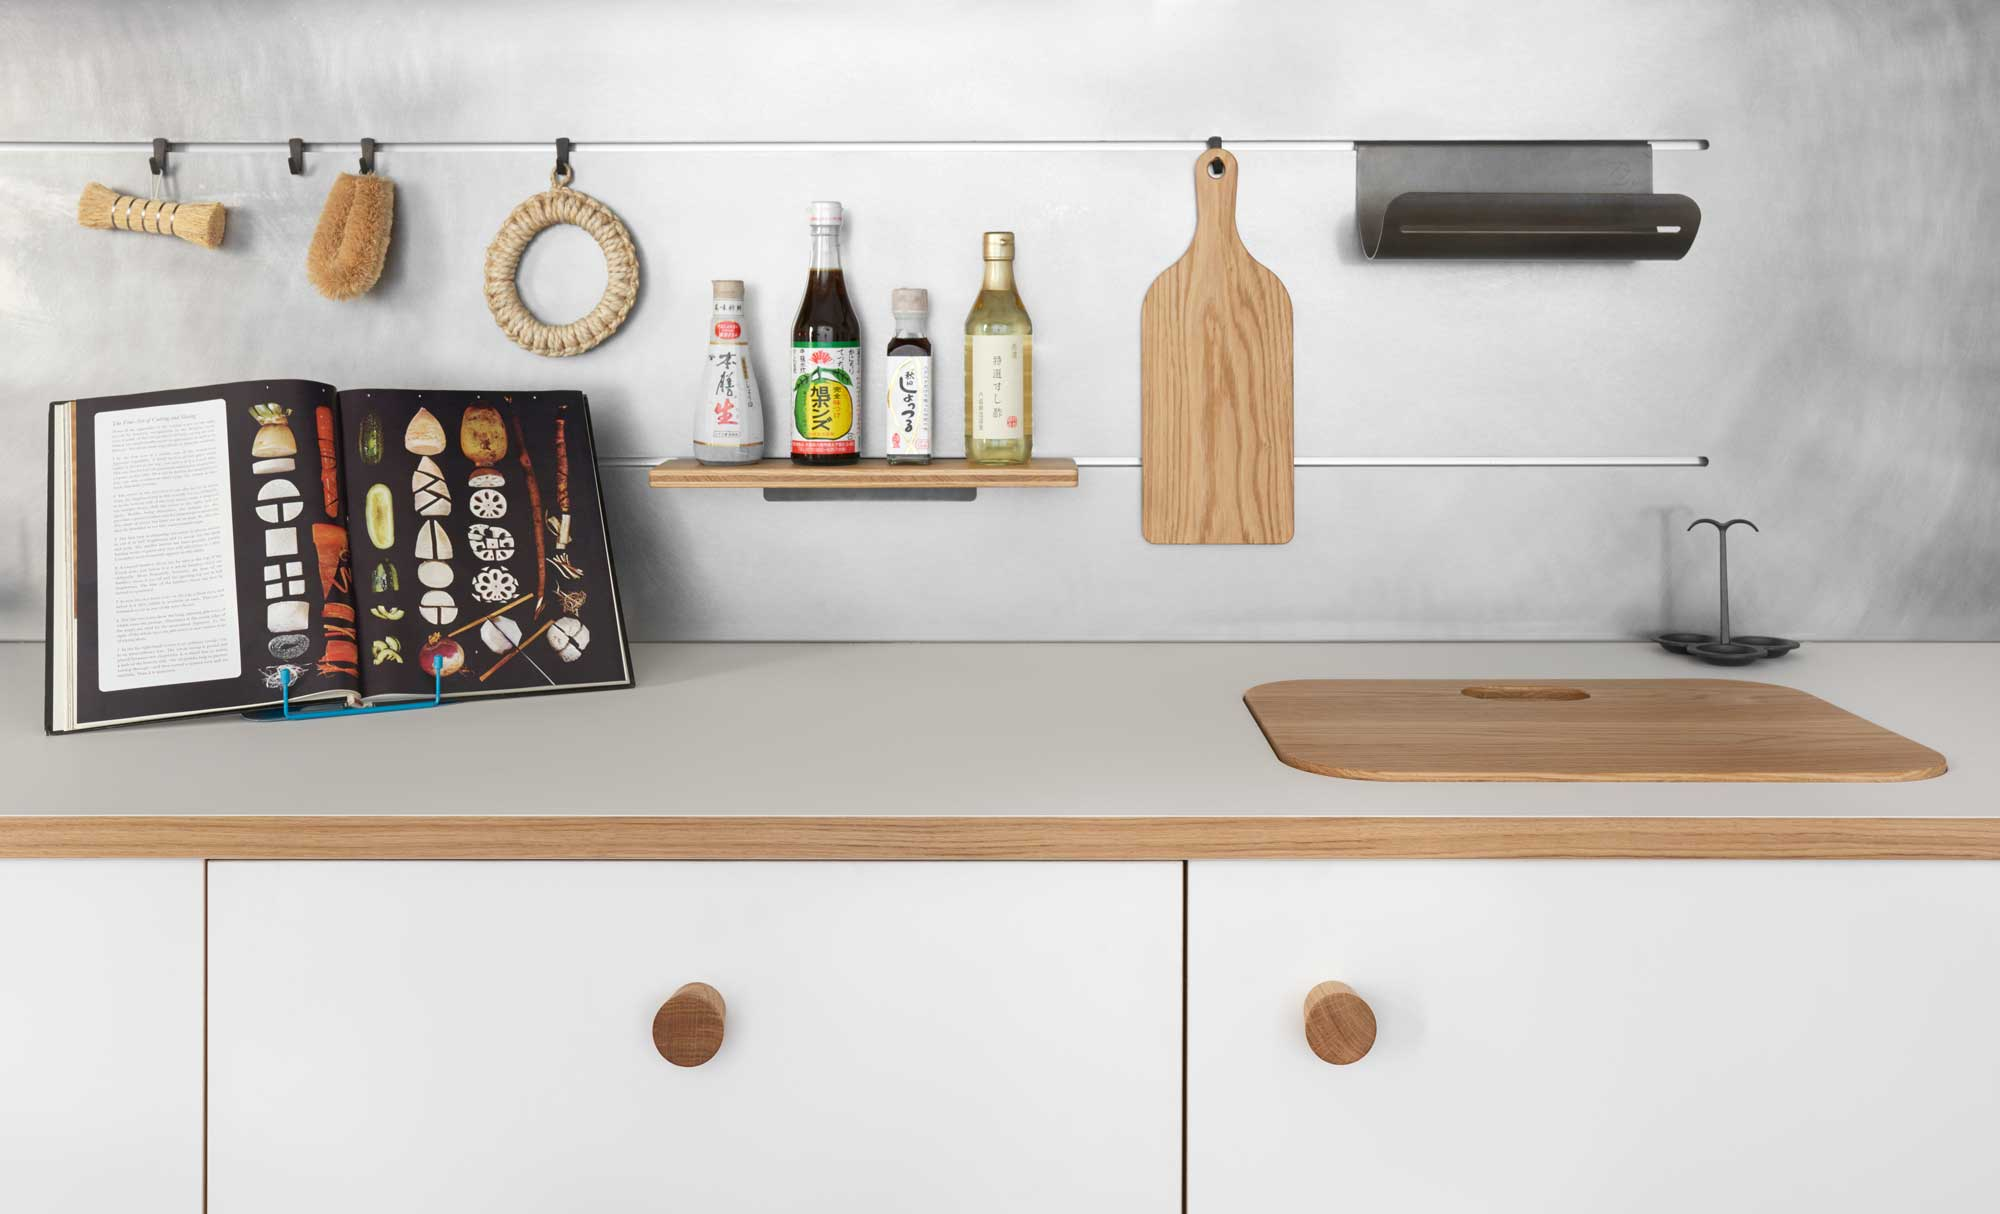 The 'Lepic' kitchen designed by Jasper Morrison for Schiffini. Finished in oak wood and a solid sheet laminate called Fenix. All kitchen accessories (hanging rails, shelving, chopping boards etc) designed by Jasper.